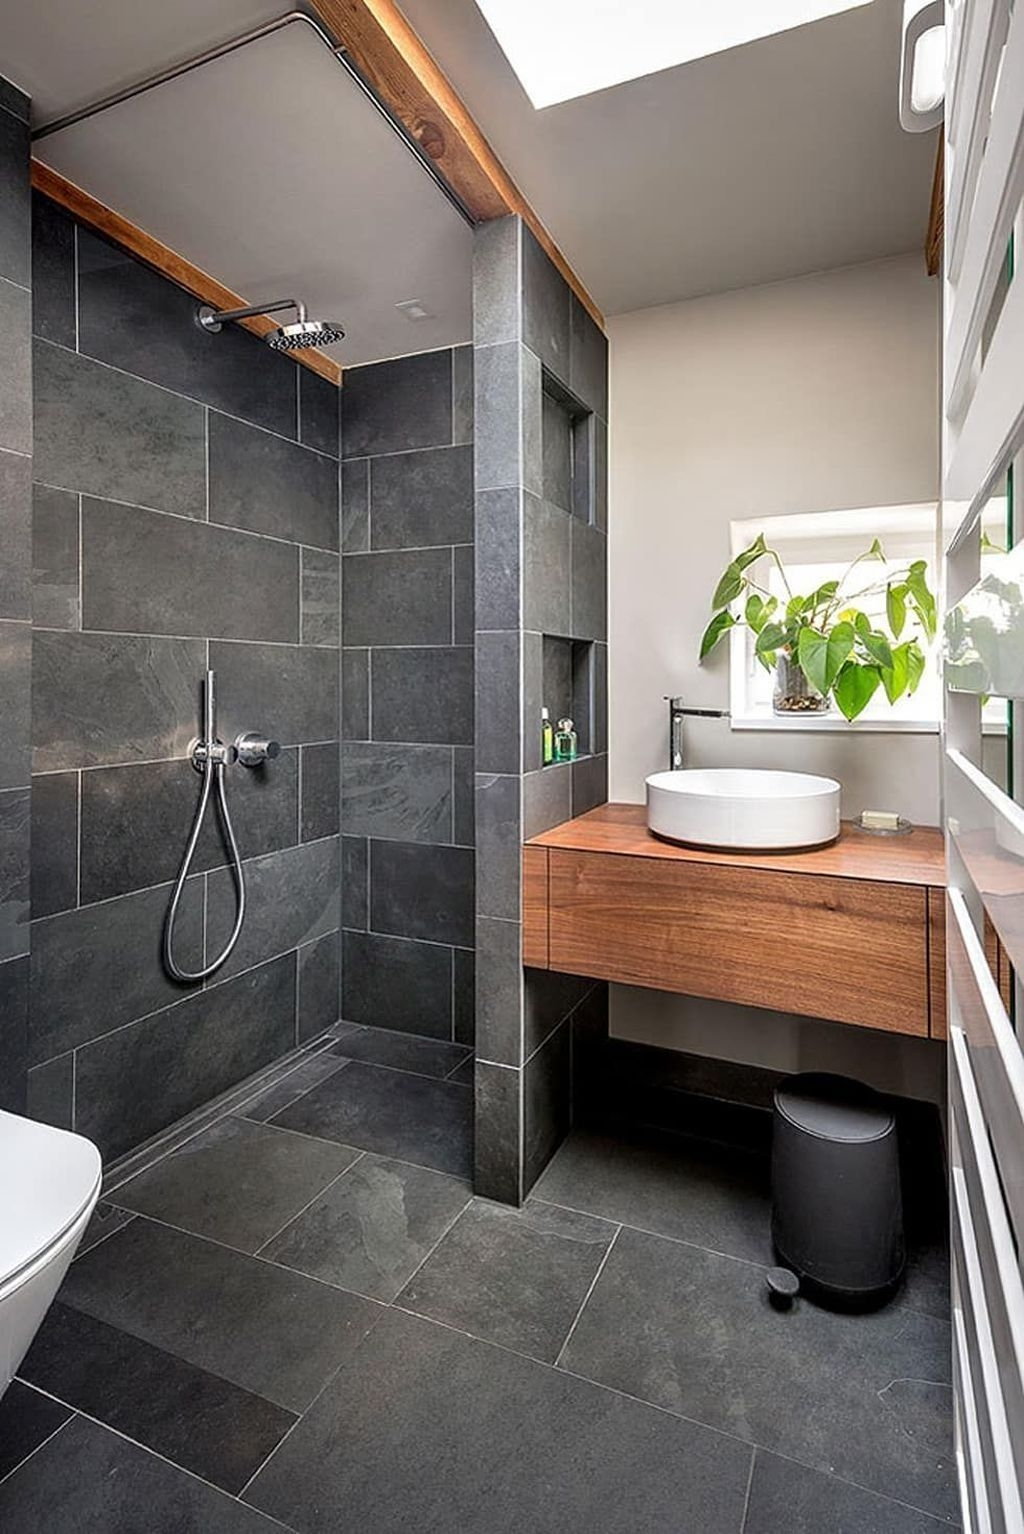 Unrdinary Small Bathroom Design Remodel Ideas With Awesome Tiles To Try 08